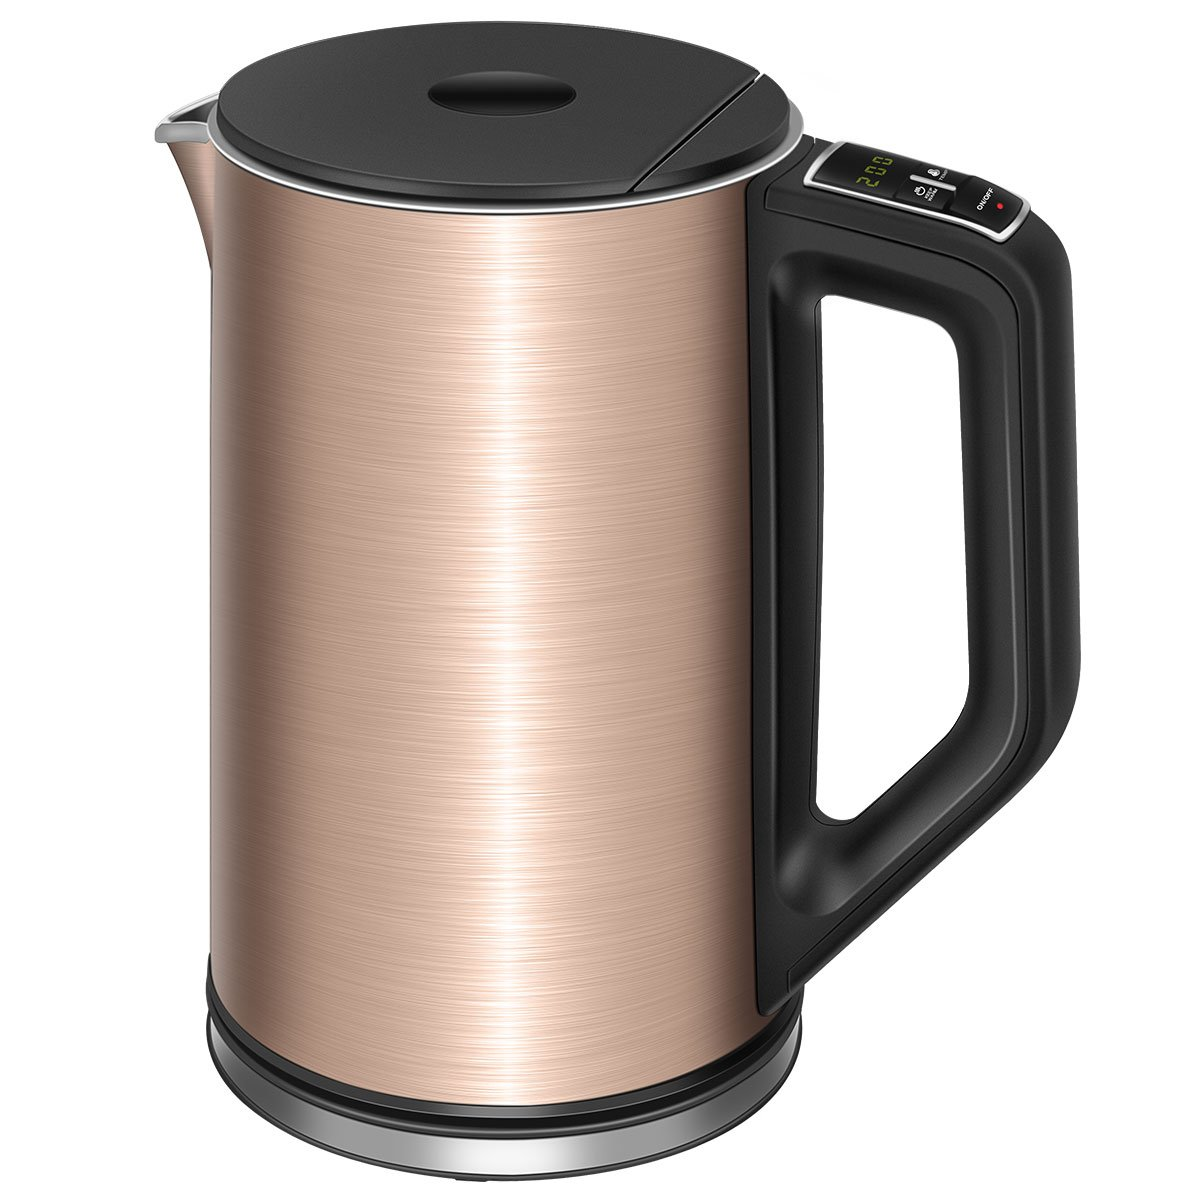 Electric Kettle Temperature Control, TOBOX Water Boiler Cool Touch 1.5L/1500W Double Wall Stainless Steel Electric Water Kettle from 90 ℉-212℉ and Keep-Warm Function(Rose Gold) by TOBOX